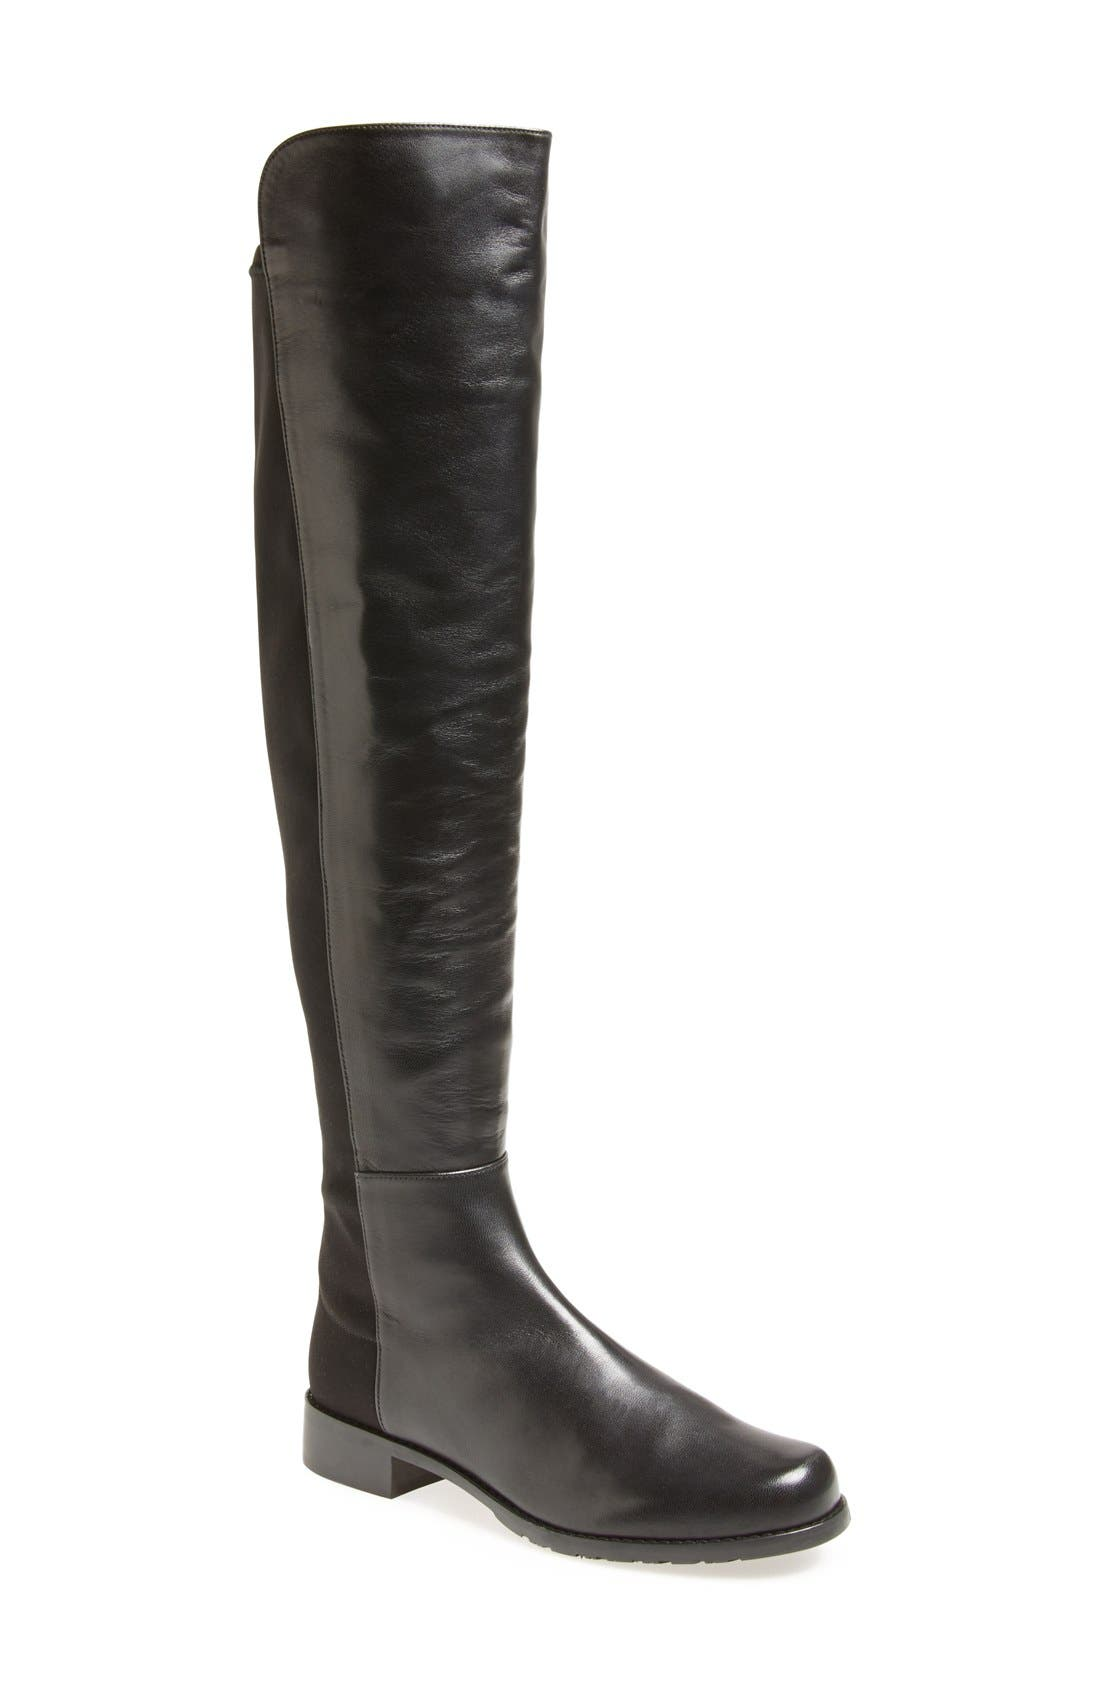 Alternate Image 1 Selected - Stuart Weitzman 5050 Over the Knee Leather Boot (Women)